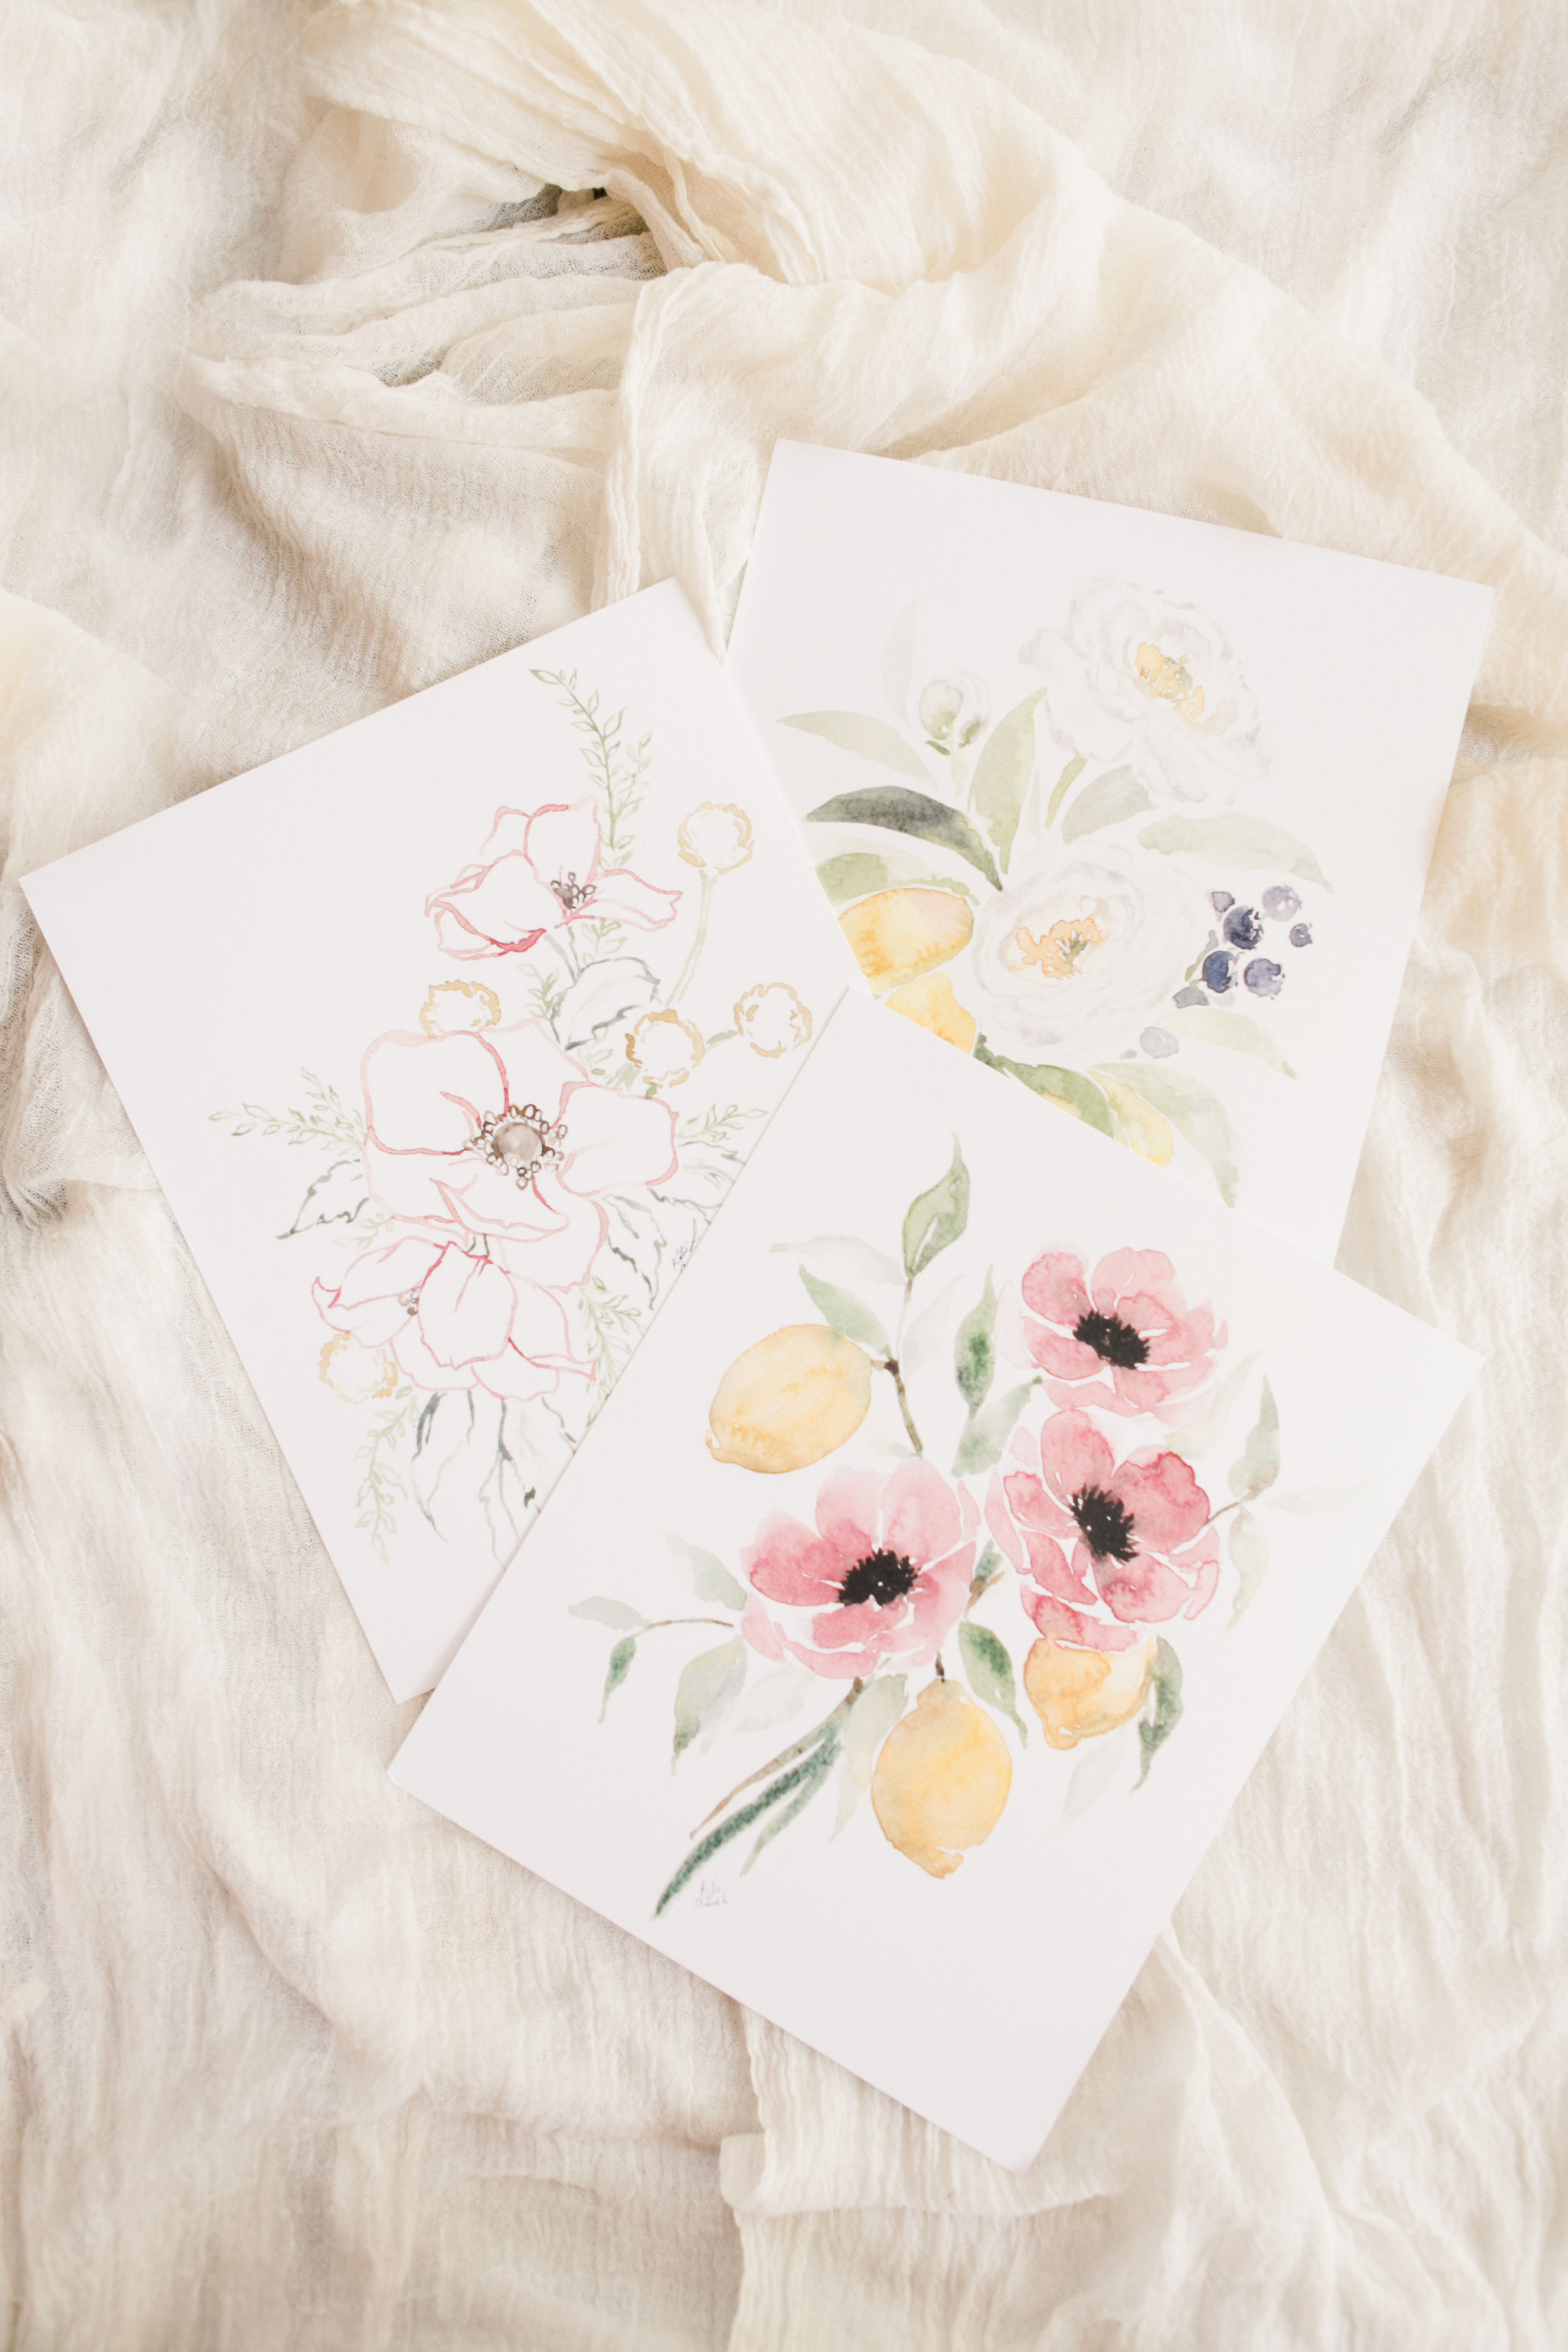 blushed designs watercolor print